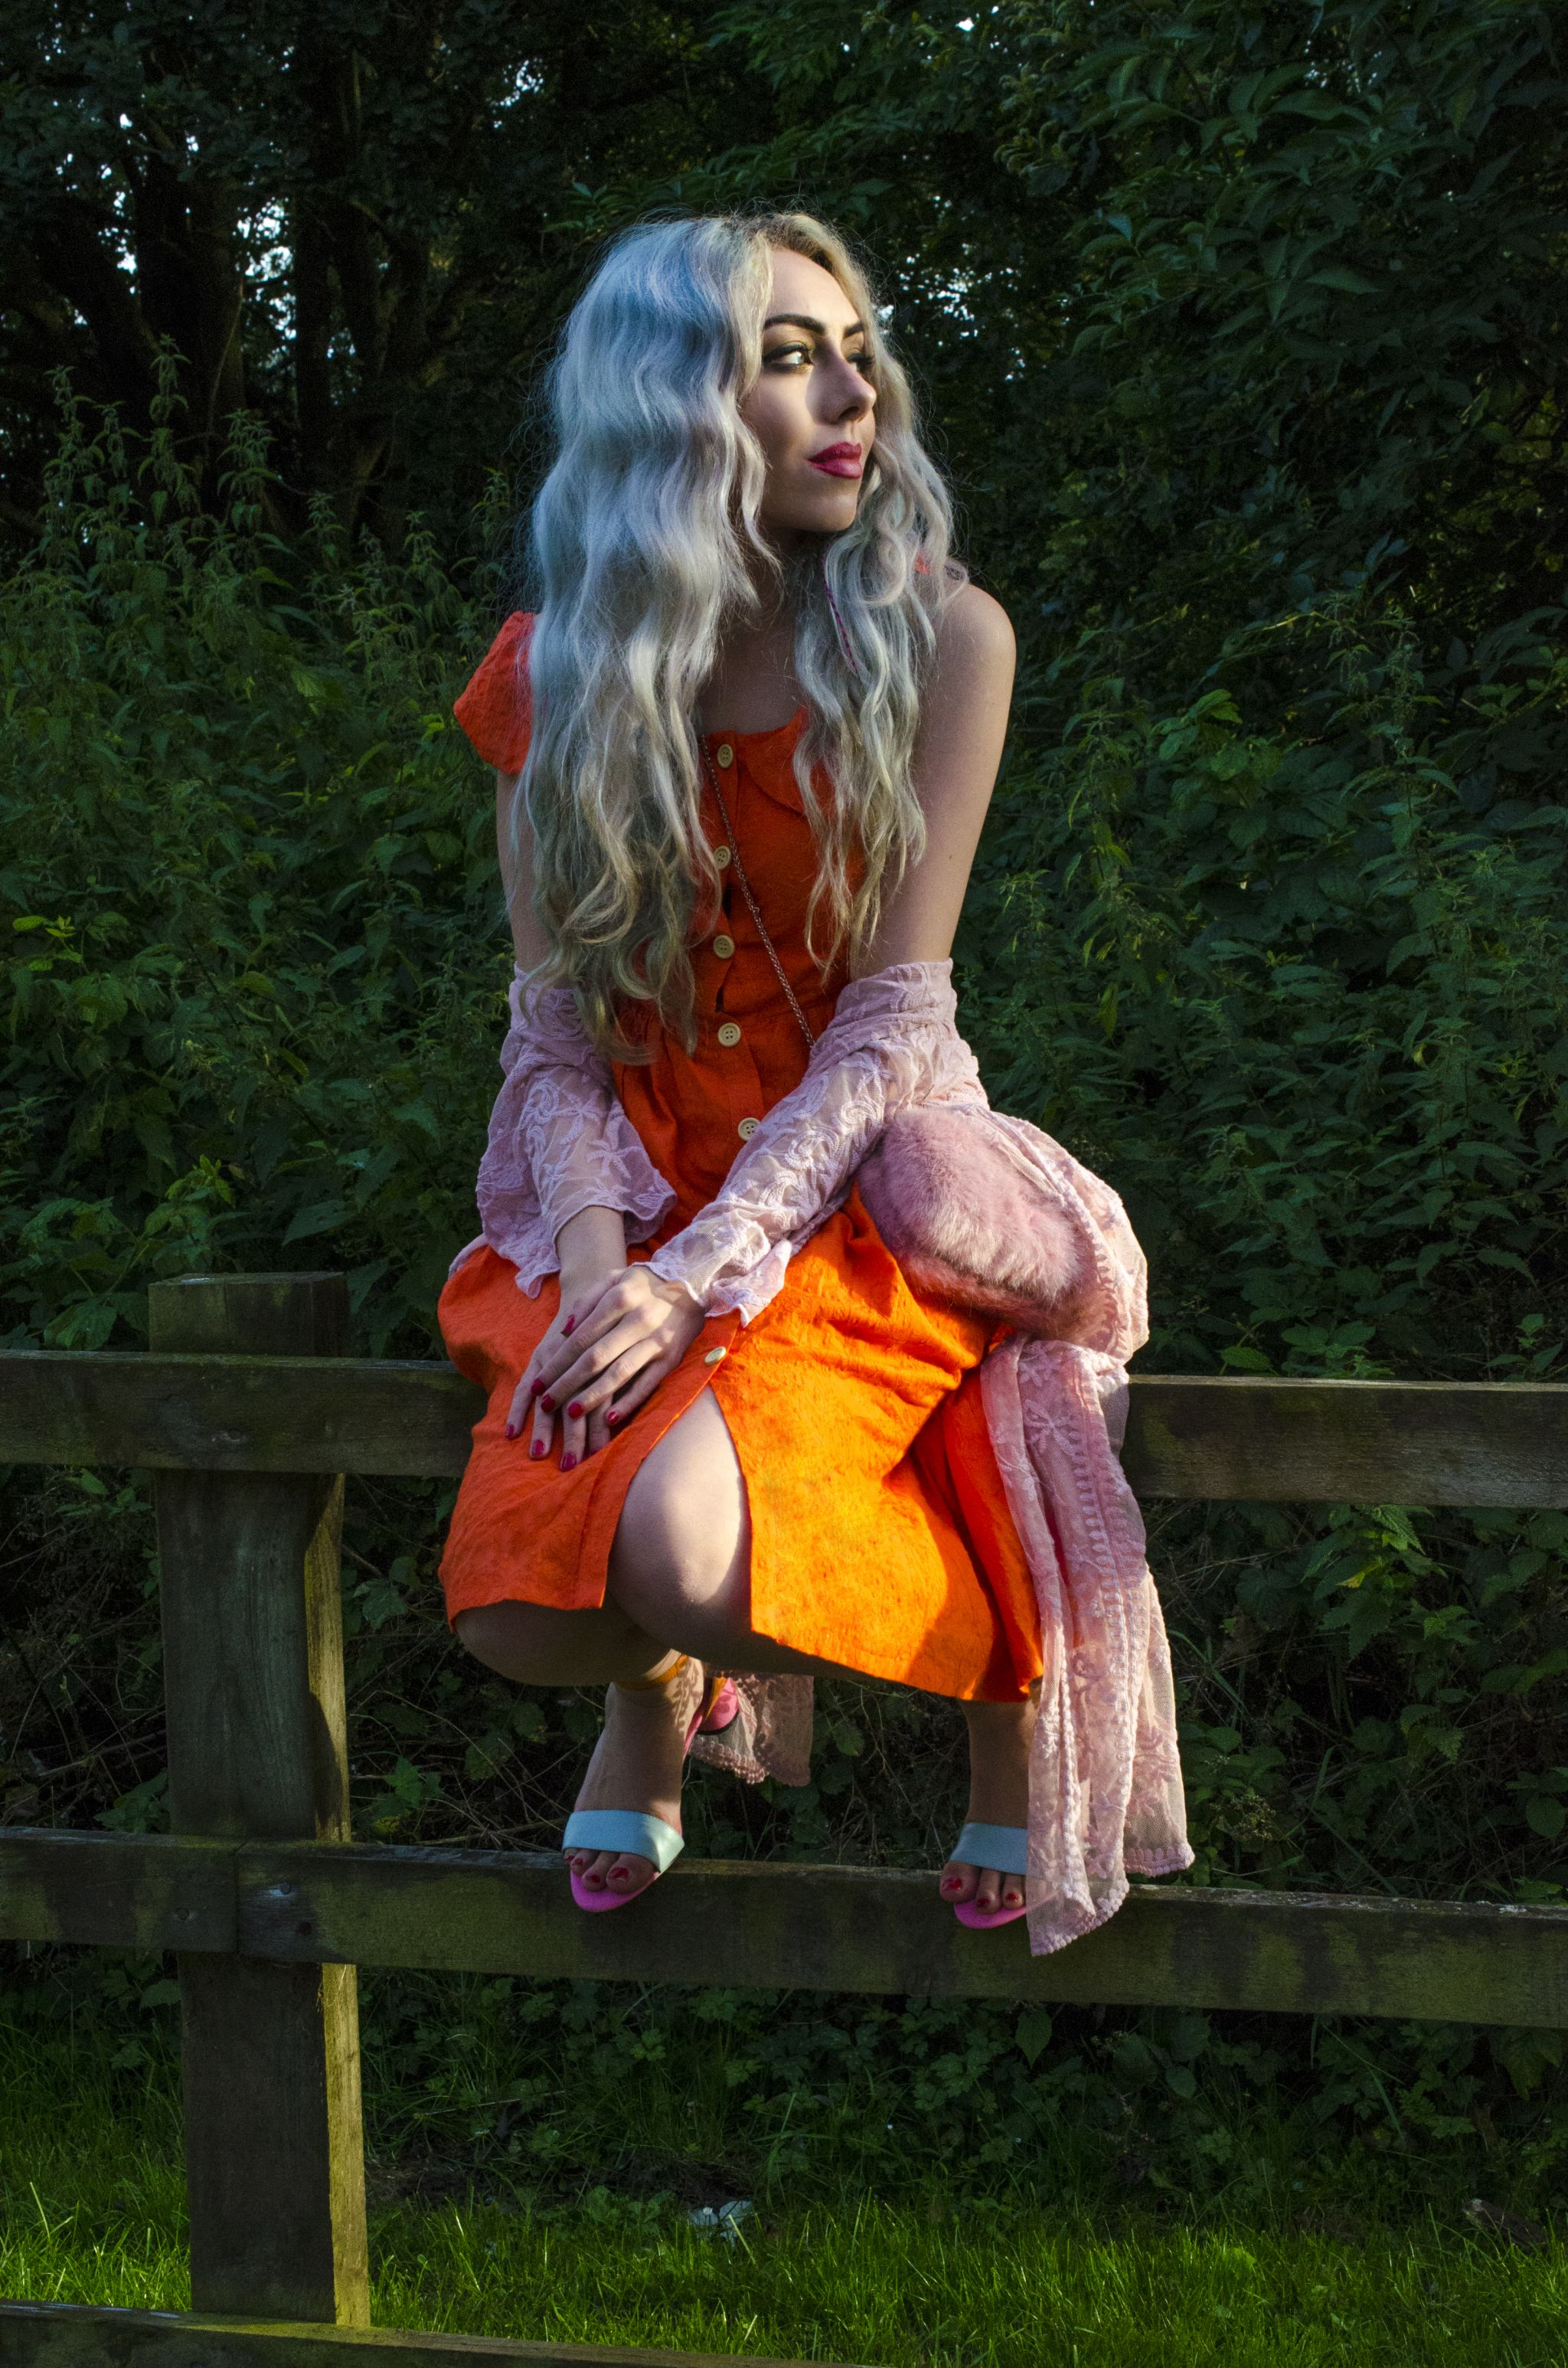 Liverpool Fashion Blogger Stephi LaReine